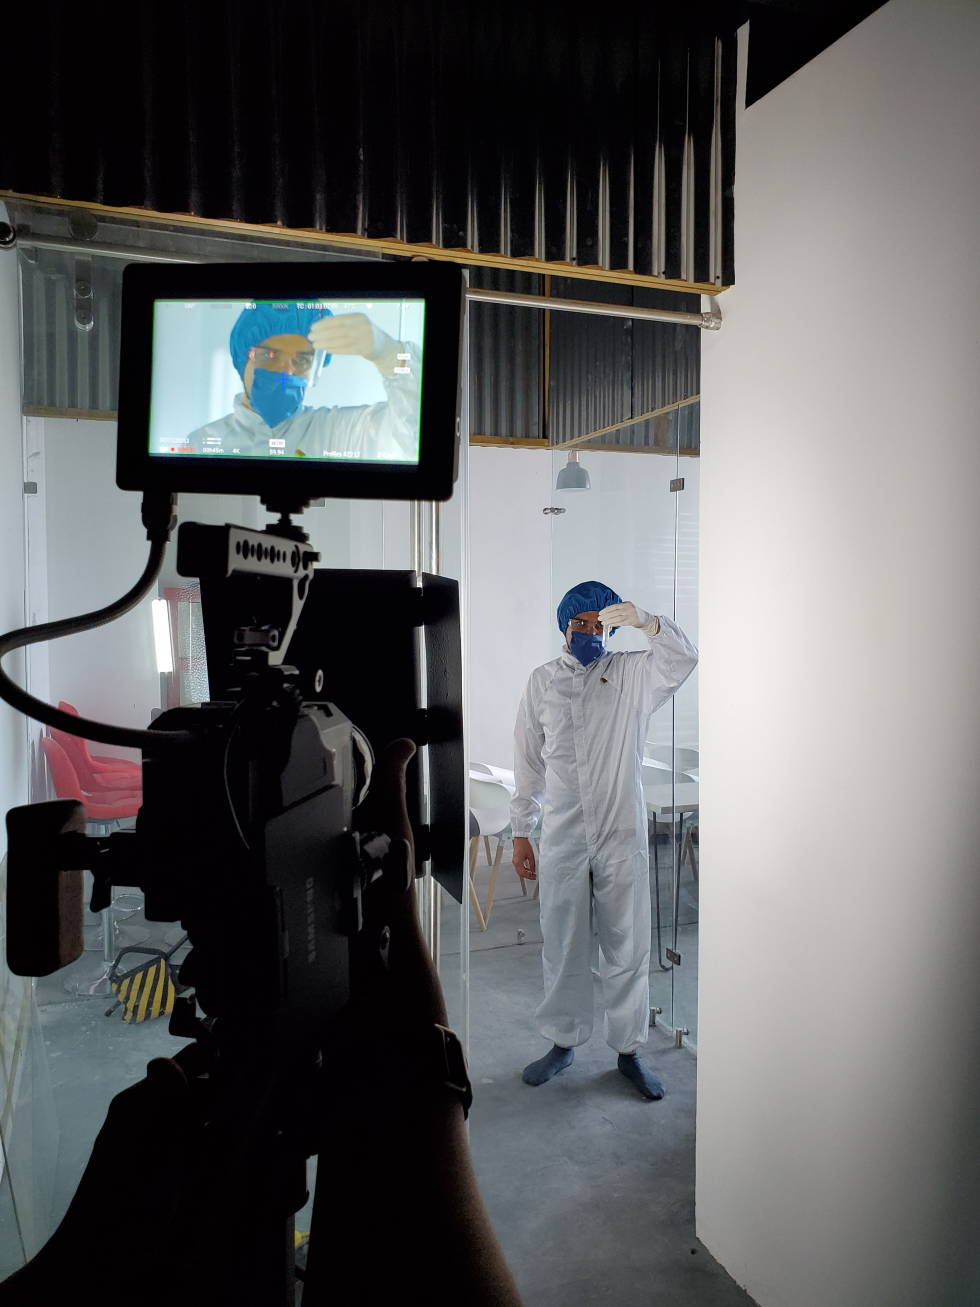 Image of a person in PPE gear in front of a camera